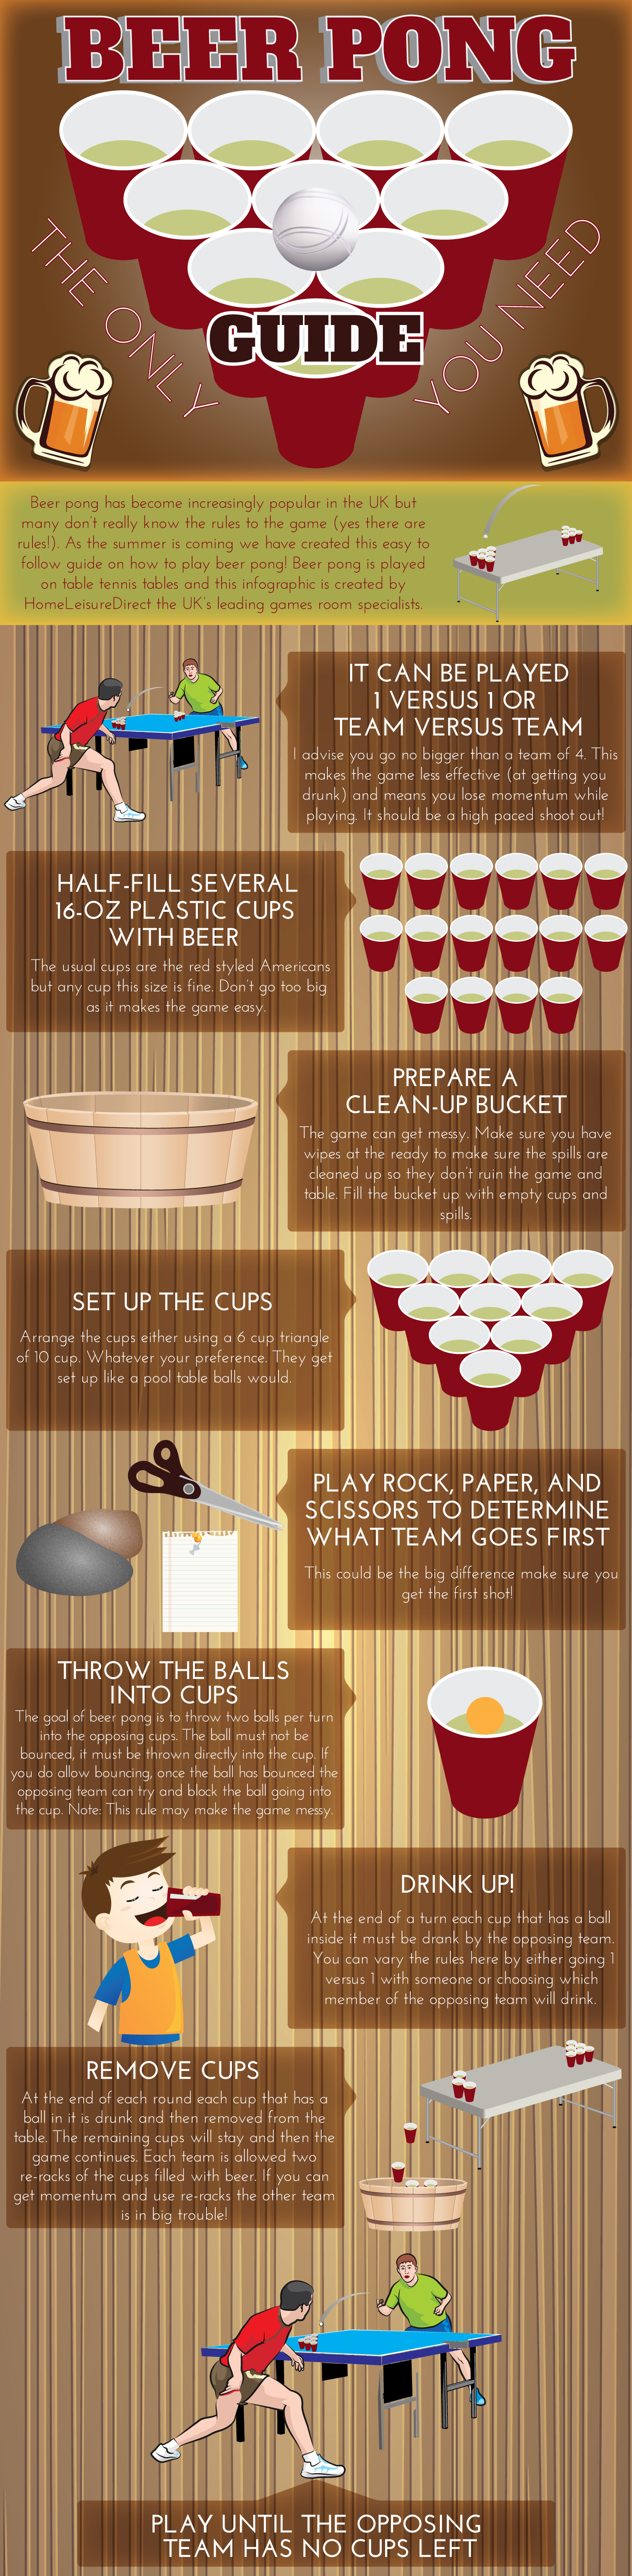 Beer Pong: The Only Guide You Need Infographic